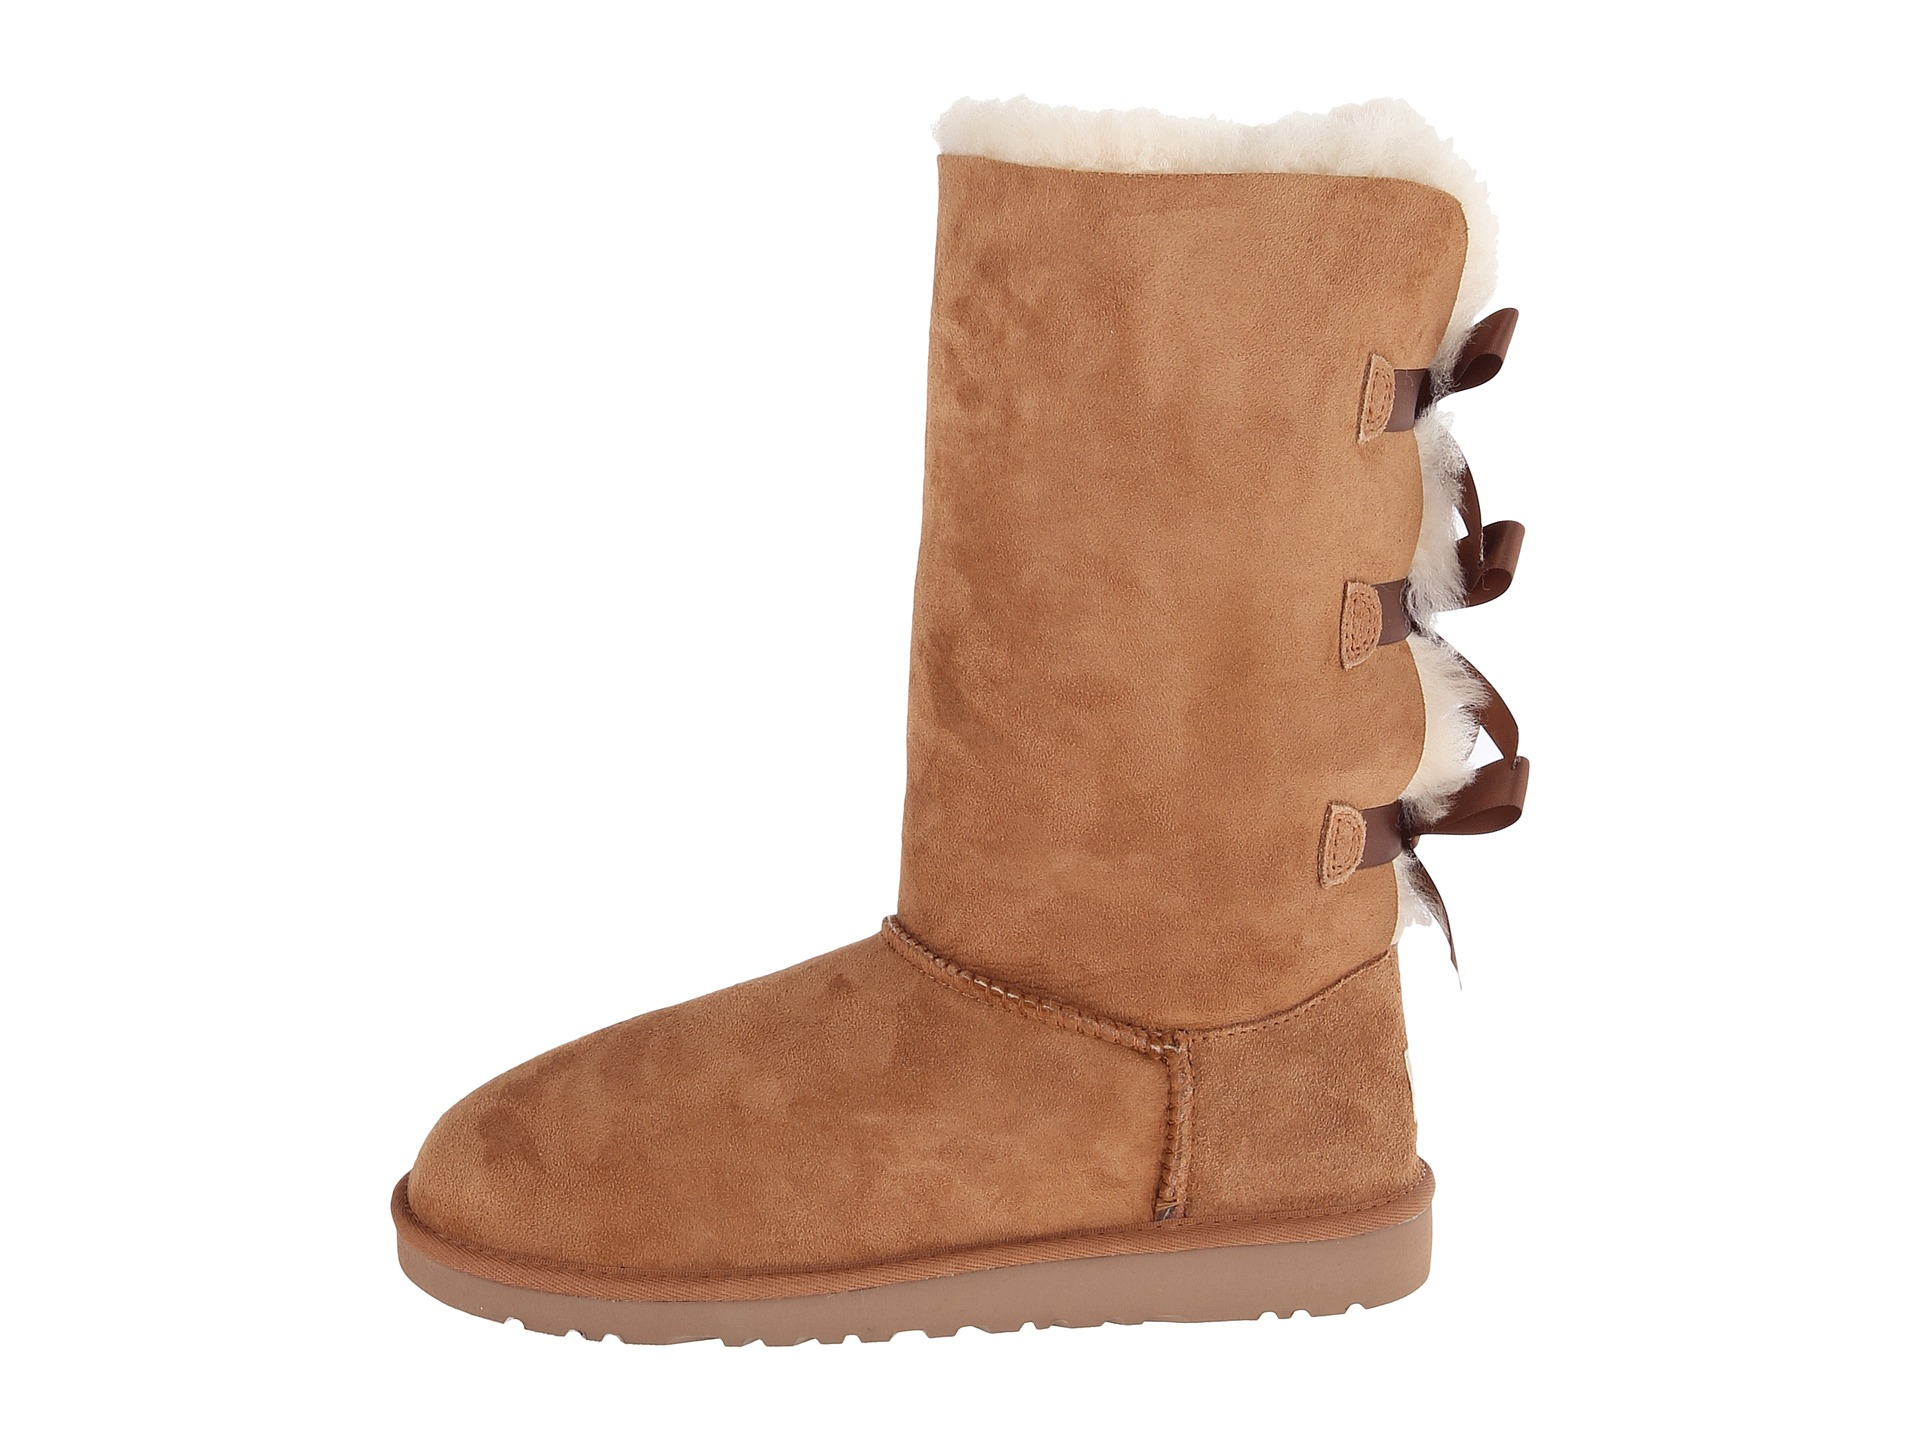 7b0eca29a19 Bailey Bow Tall Uggs Chestnut - cheap watches mgc-gas.com